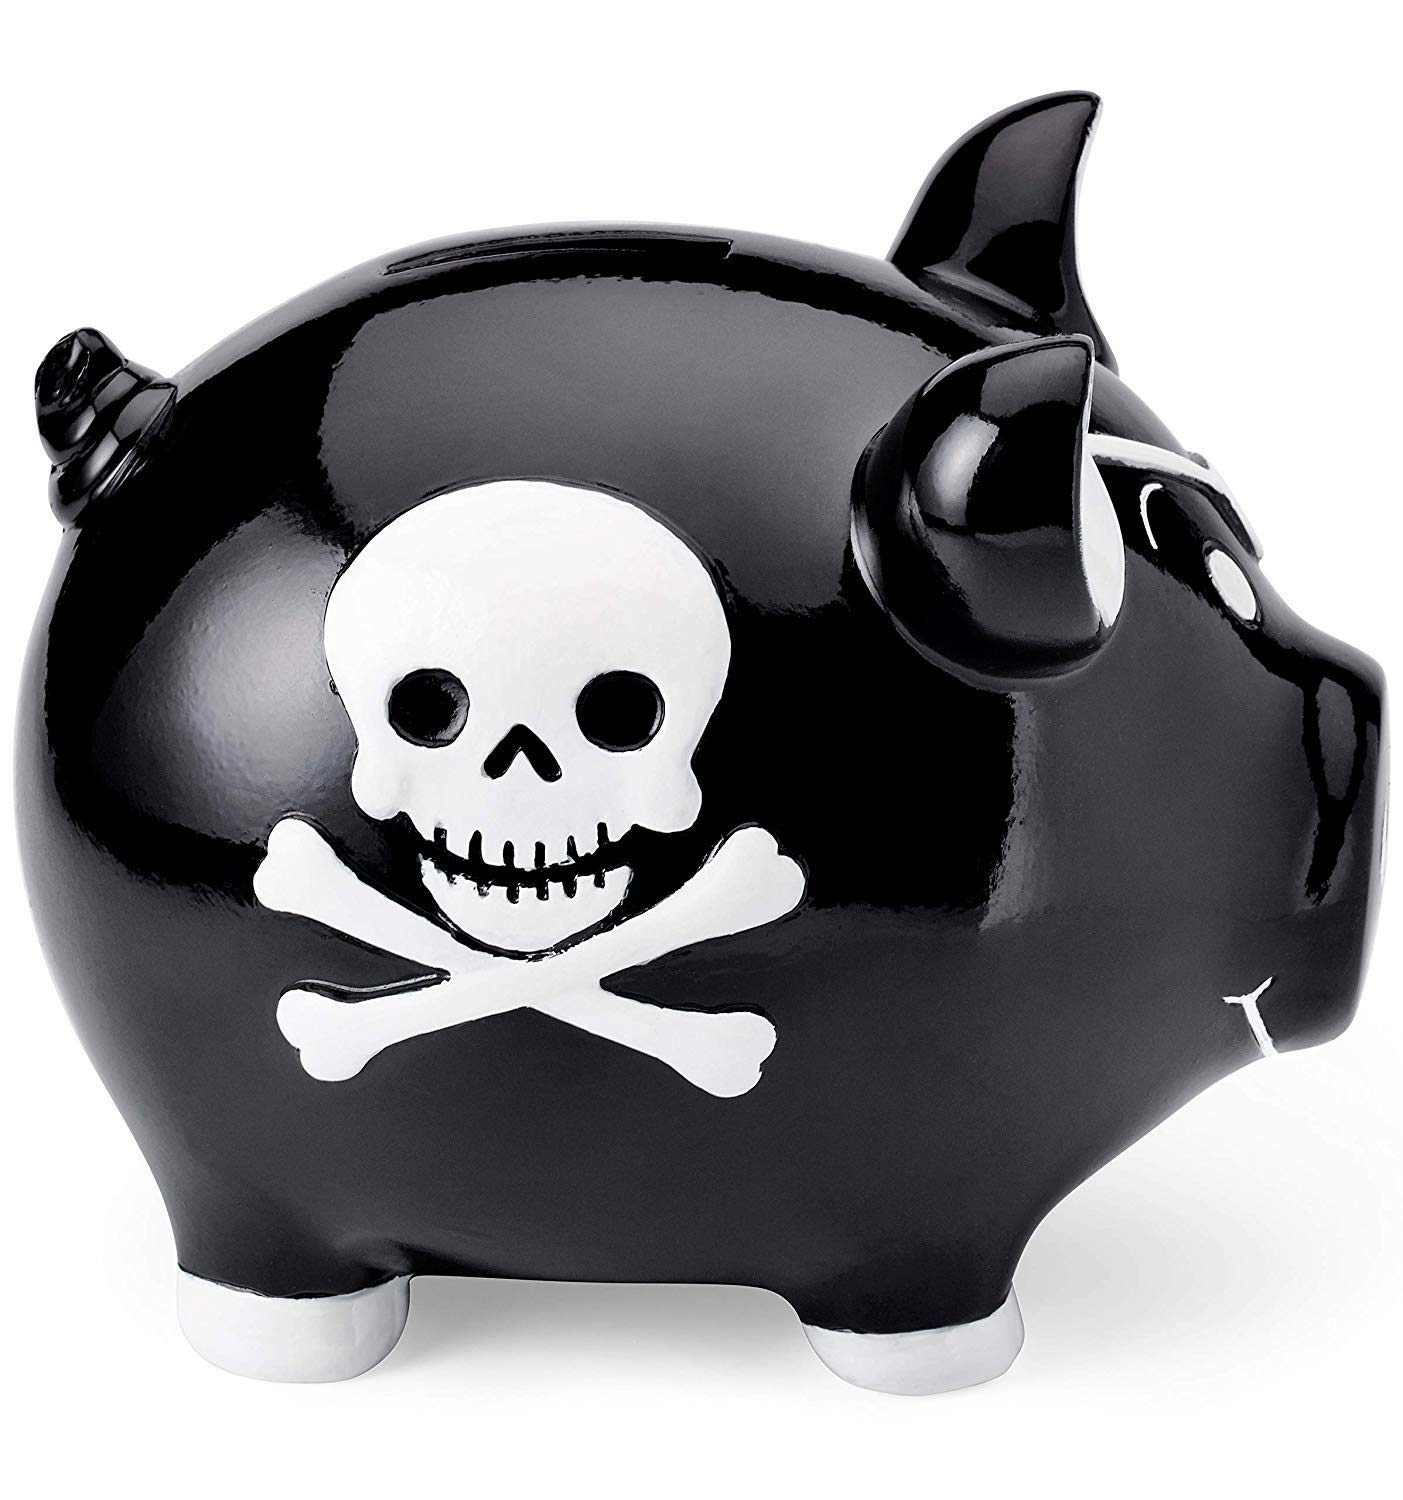 Mousehouse Gifts childrens pirate themed piggy bank money box gift for a boy or a girl